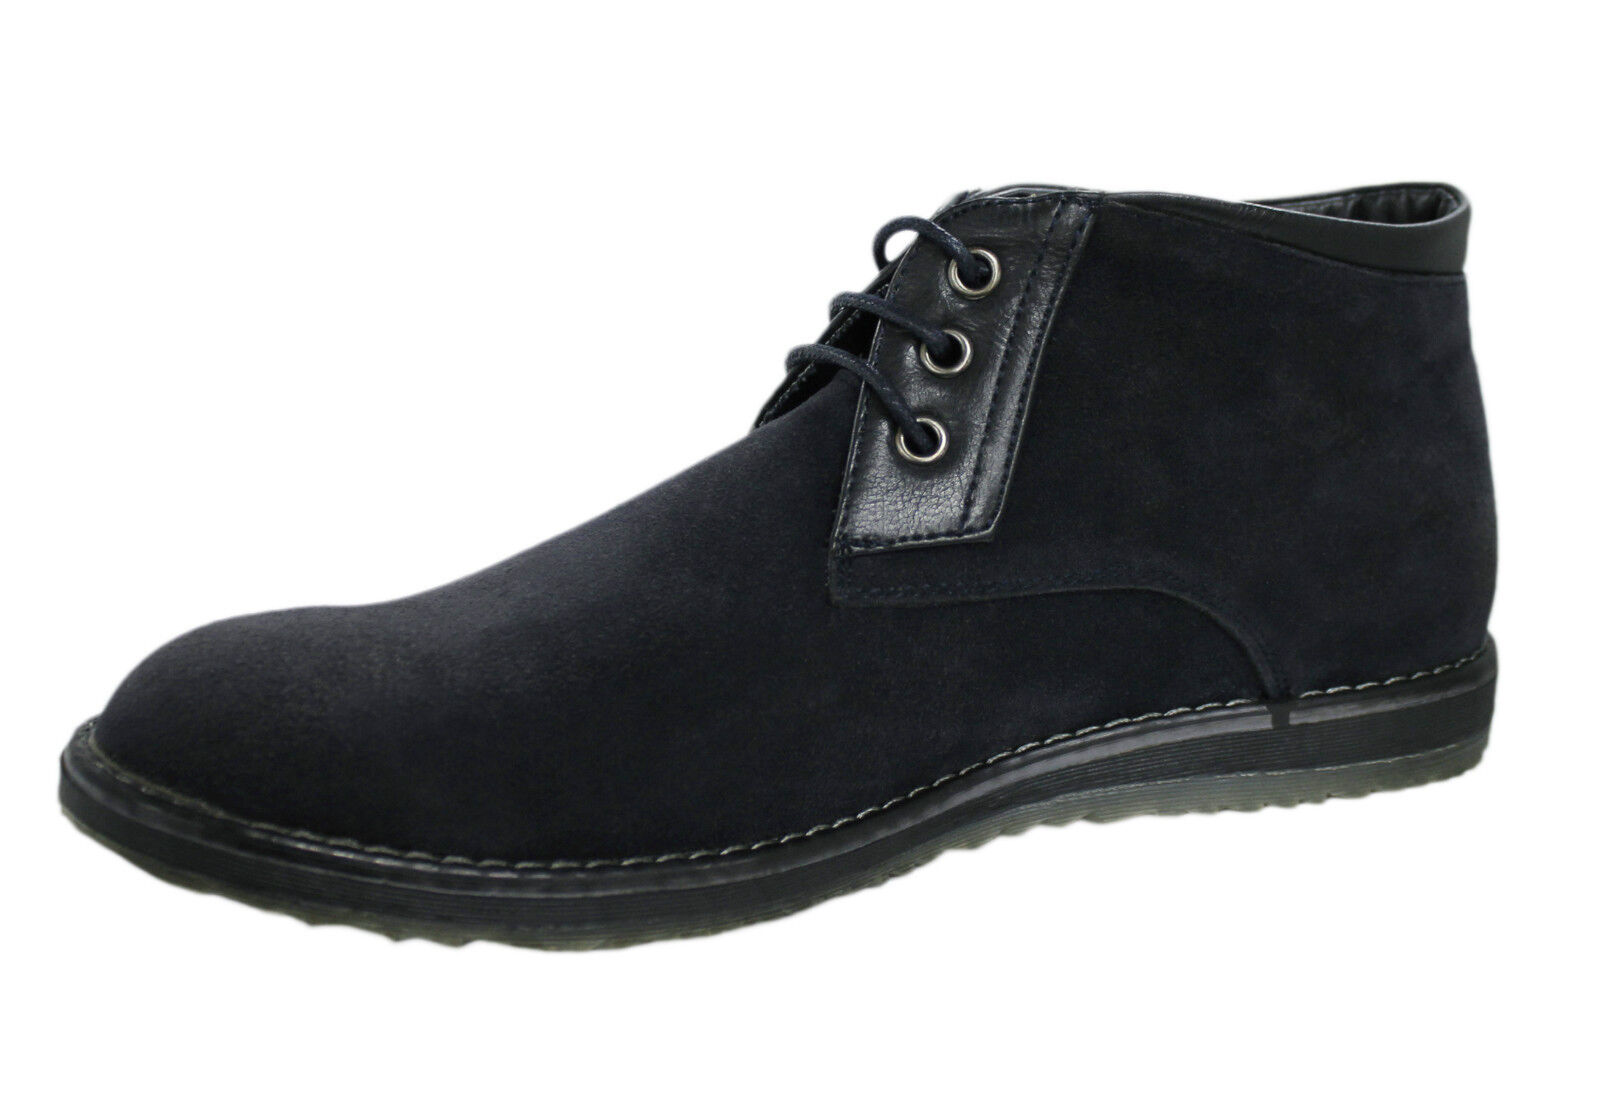 SHOES DESERT WINTER BOOTS MAN CASUAL BLACK WINTER DESERT SUEDE number 40 41 42 43 44 45 941c59